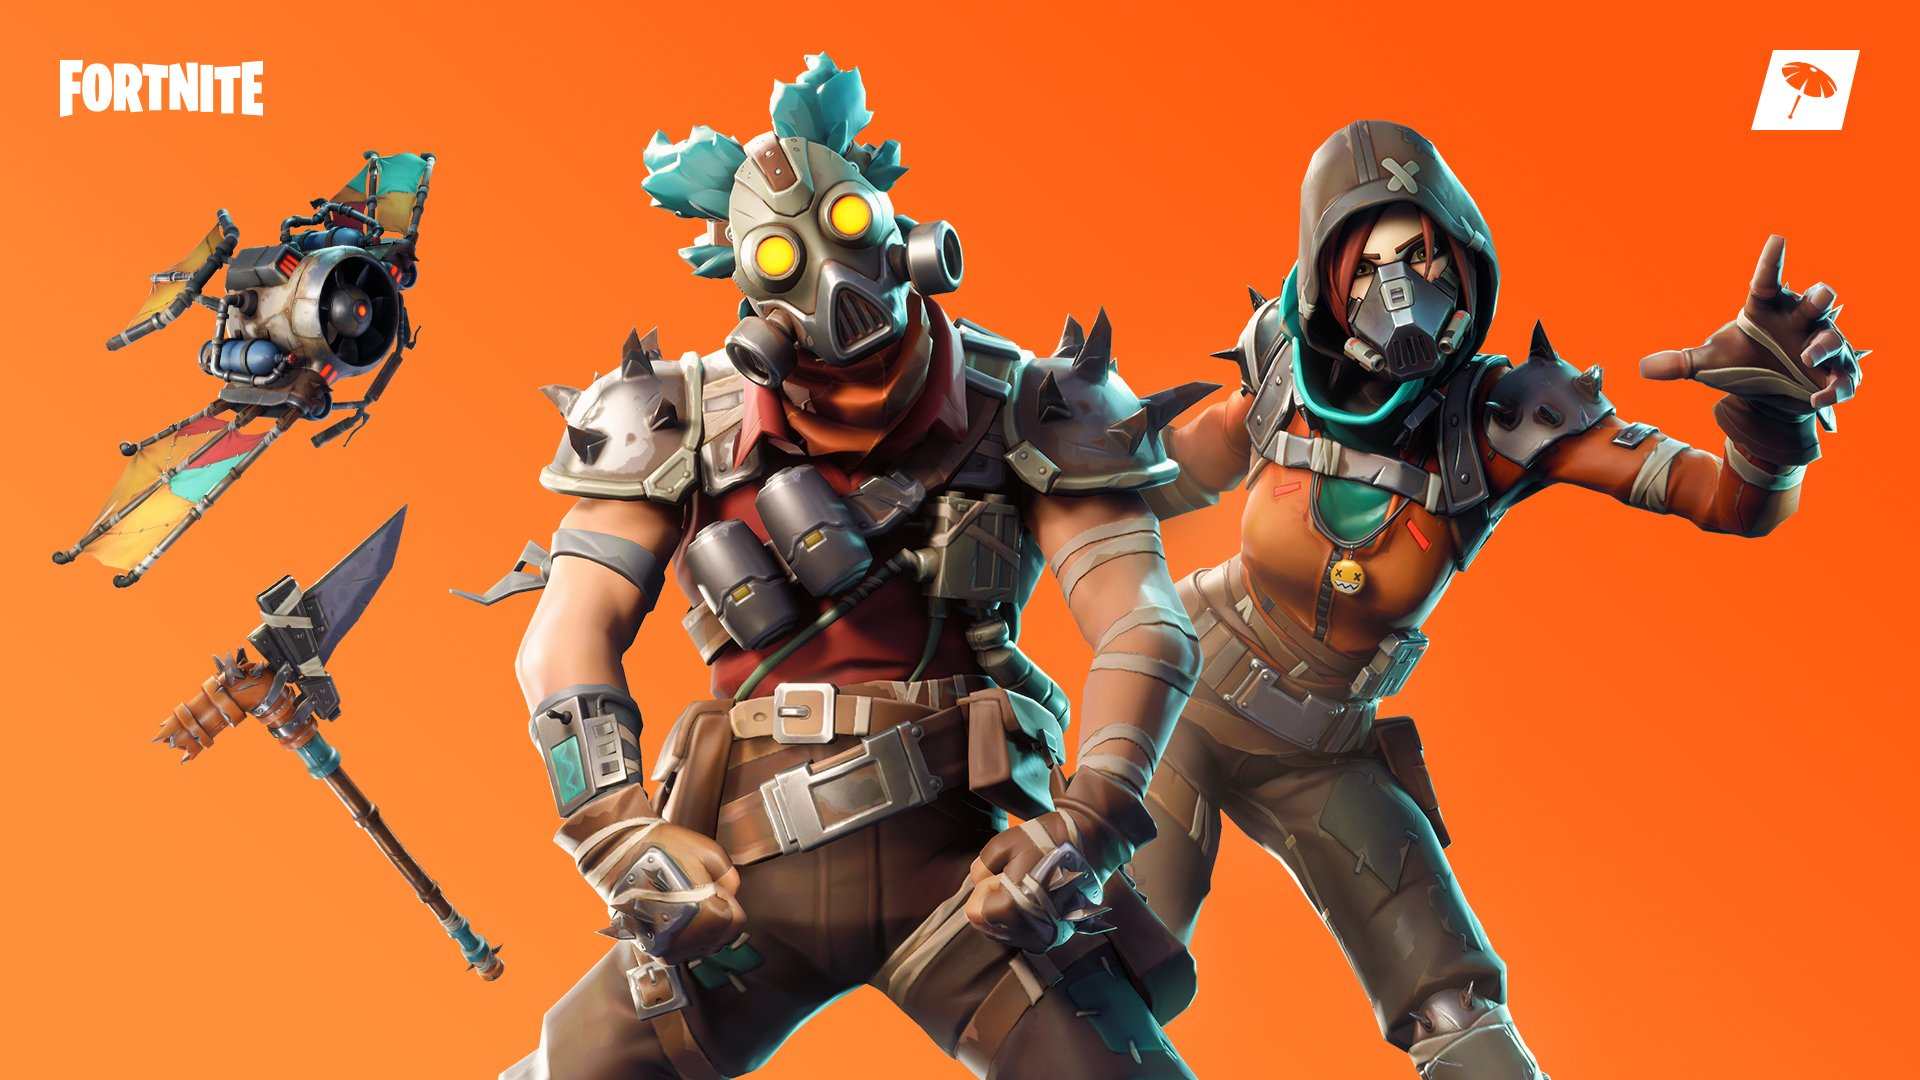 Fortnite On Twitter Quot Show Them Fear In A Handful Of Dust